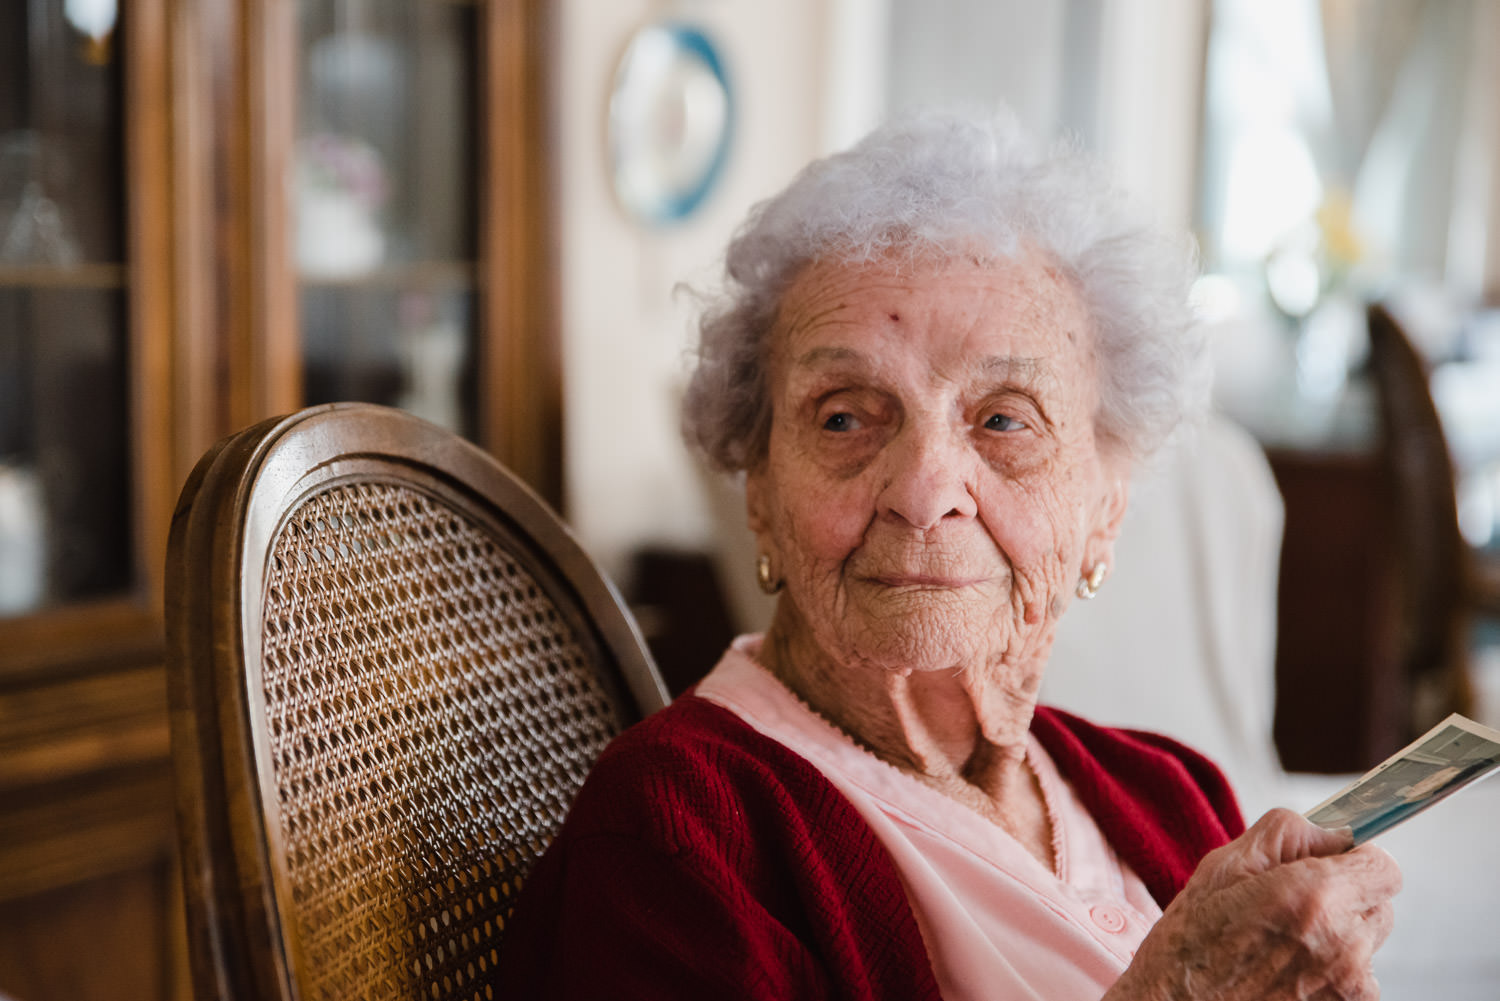 A 100 year old woman seated in her home.